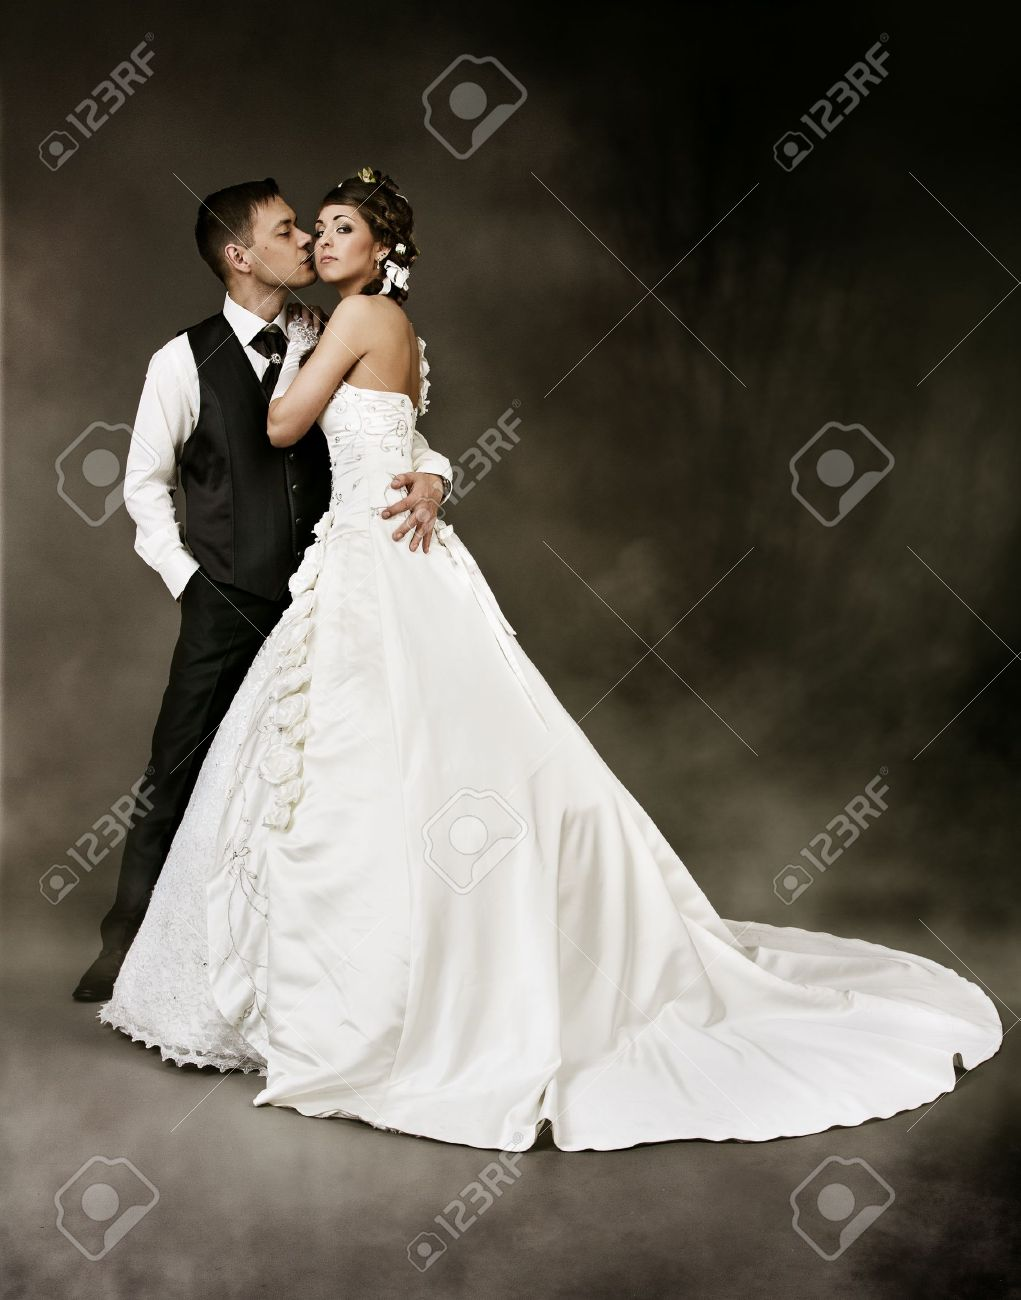 Bride and groom at dark mysterious background. Wedding couple fashion shoot. Stock Photo - 10922551